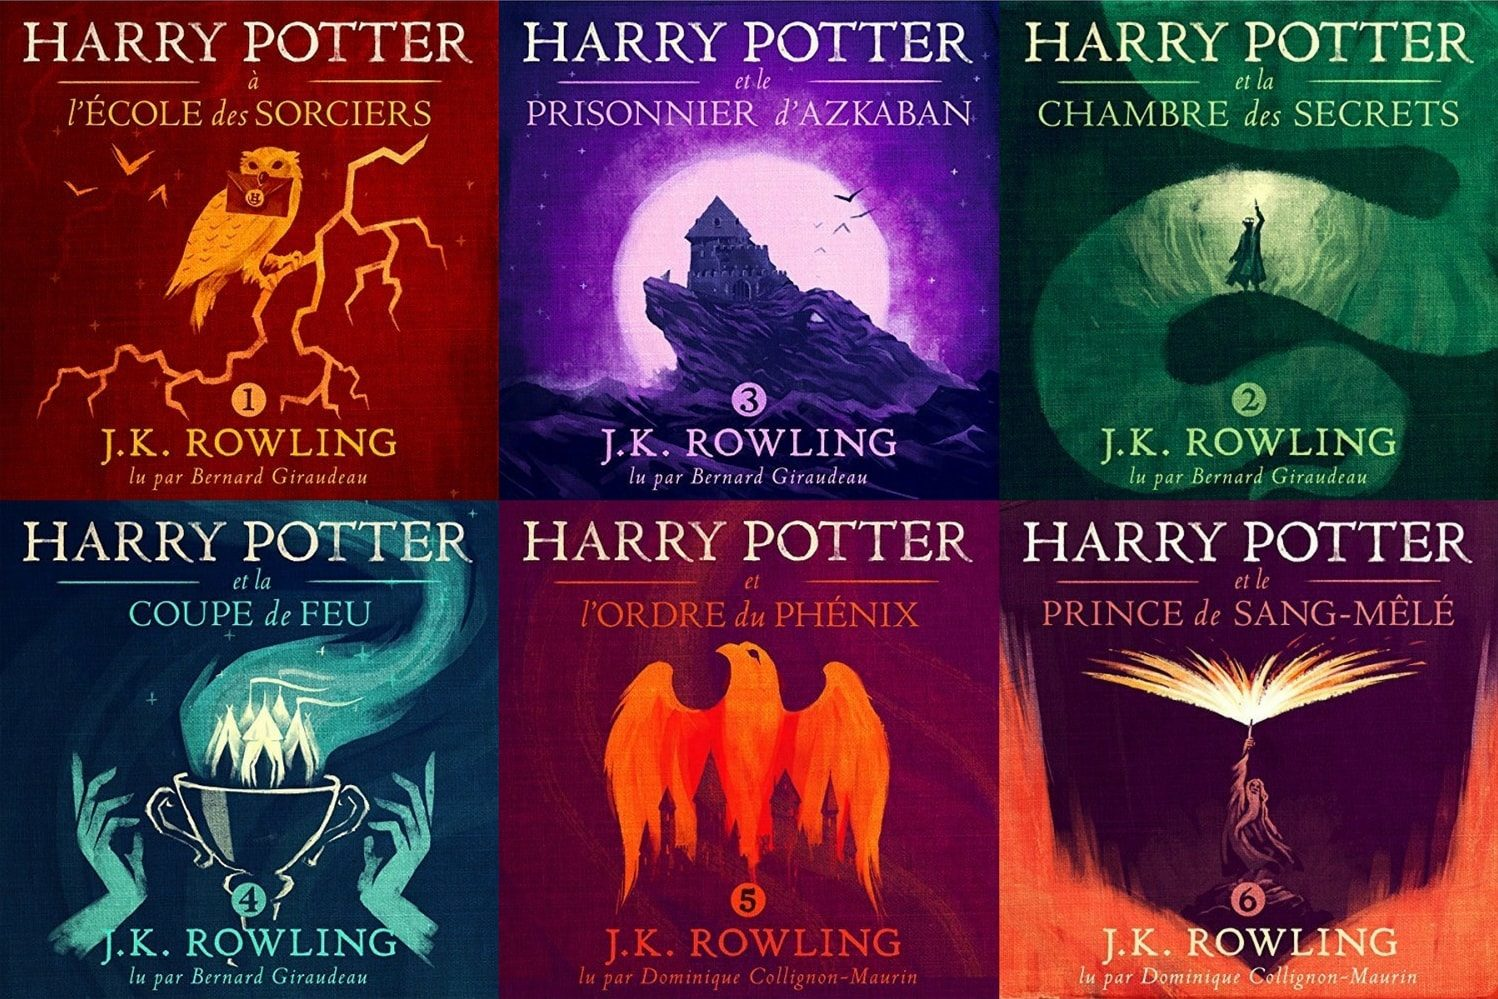 harry-potter-audible-image-couvertures-tomes-1-a-6-.jpg